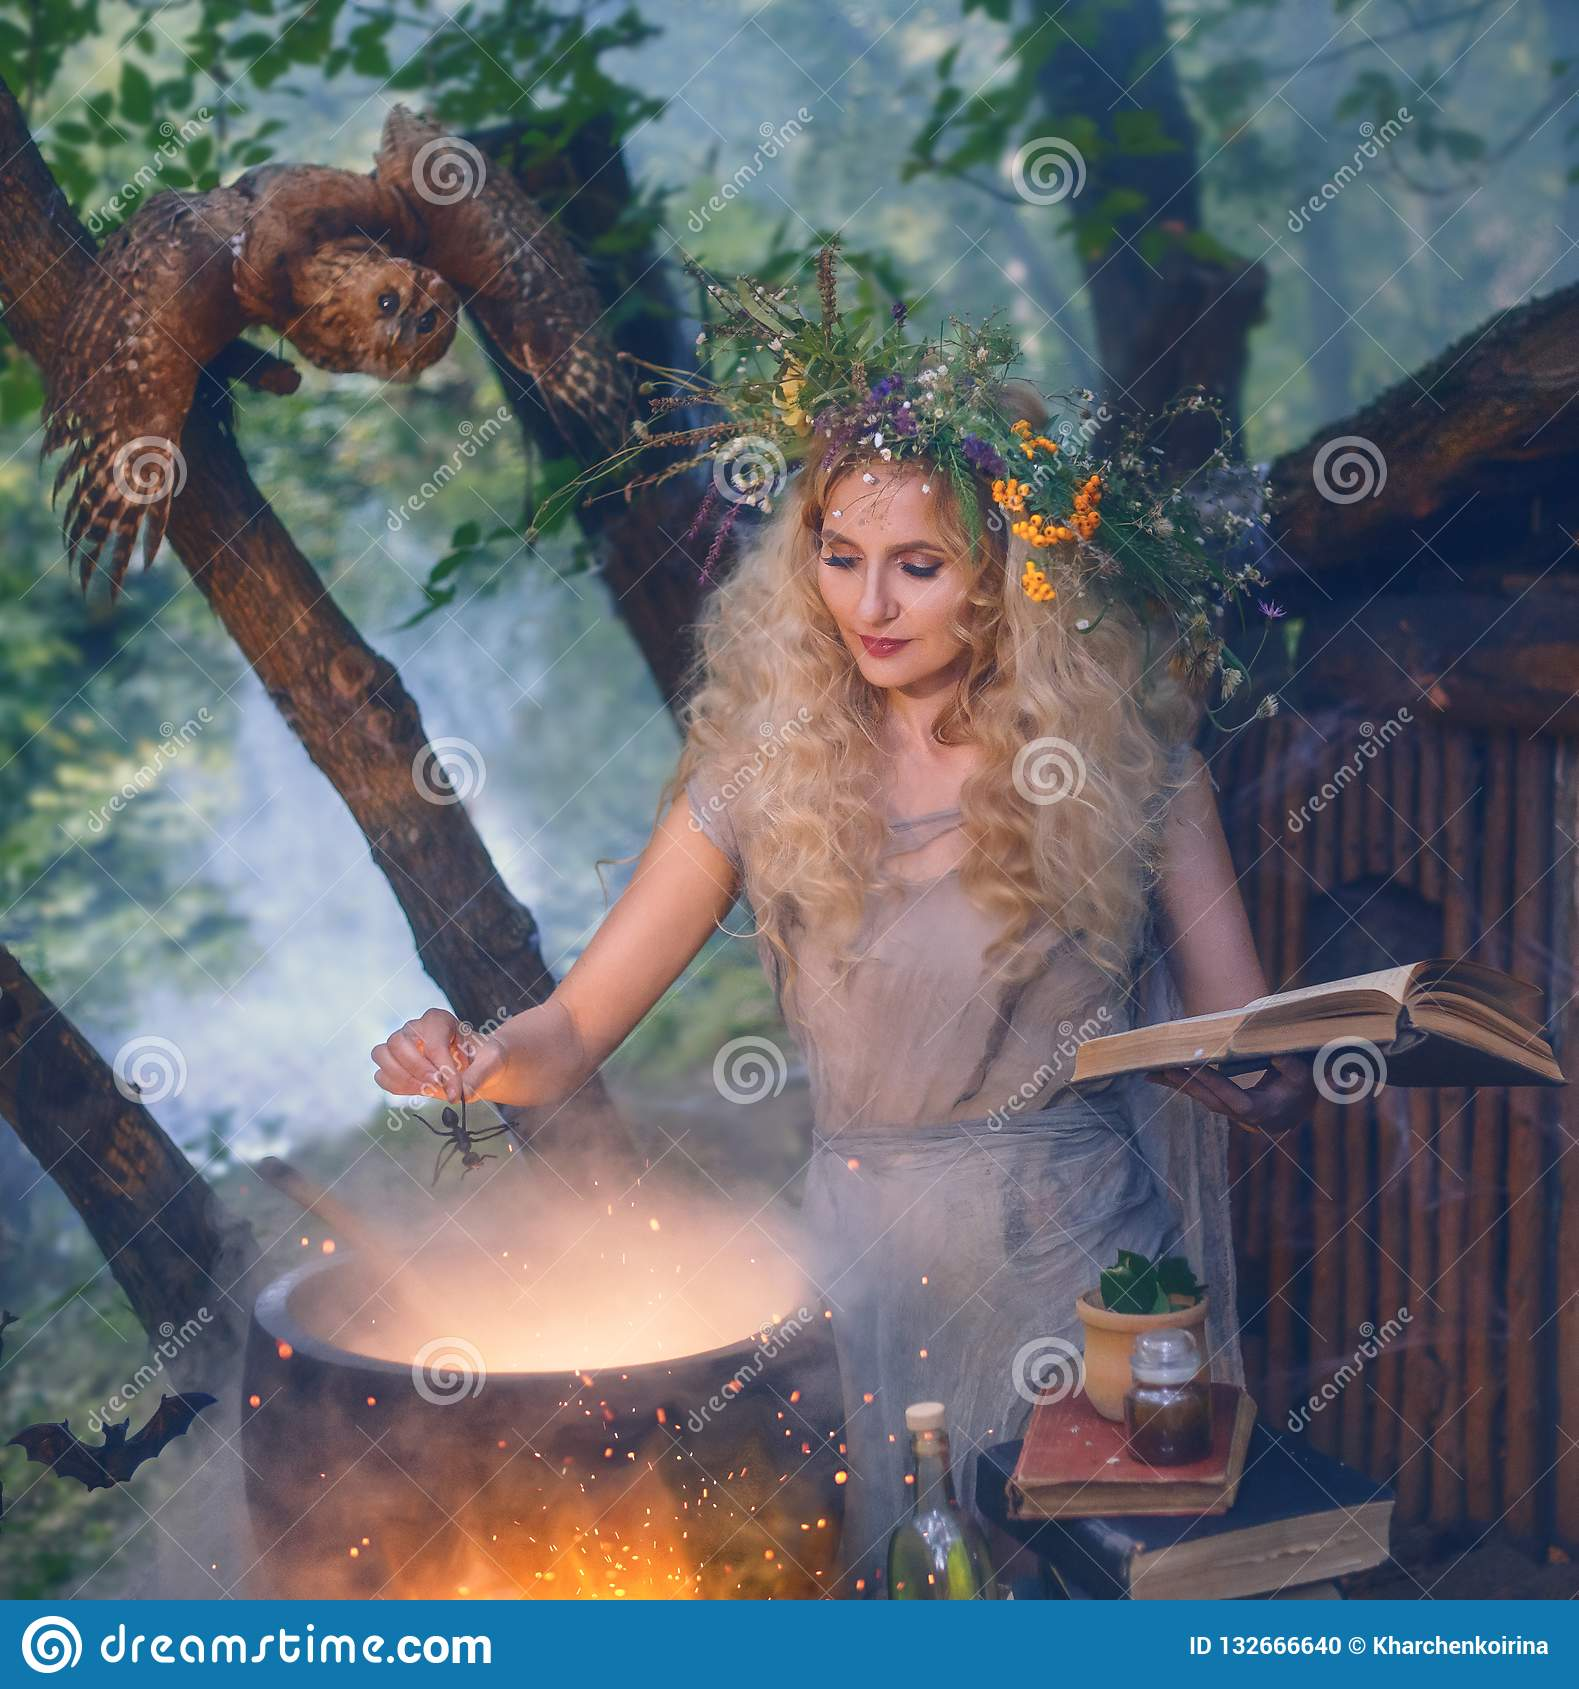 Attractive young girl with blond hair with an amazing lush wreath on her head in the forest, preparing potion in cauldro